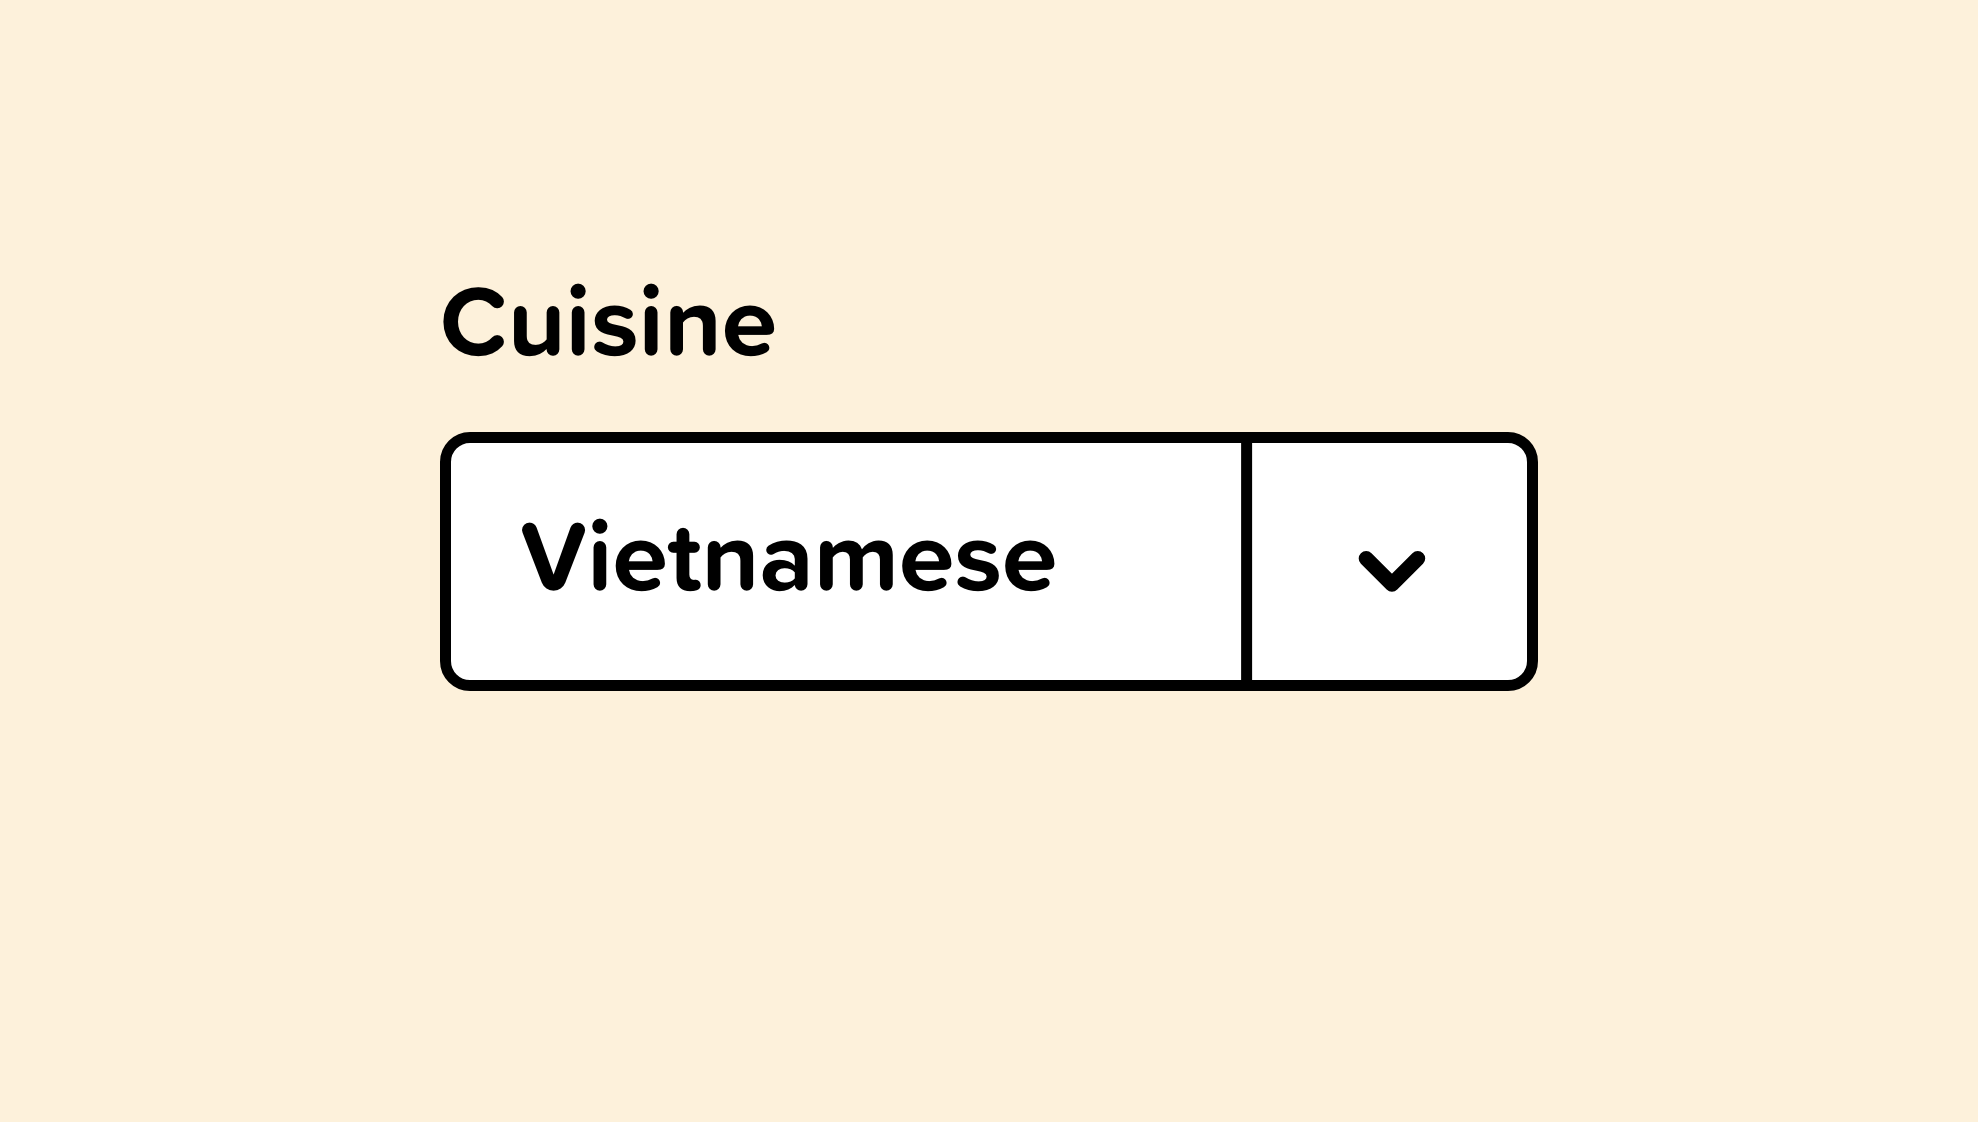 Pre-selected option for vietnamese food